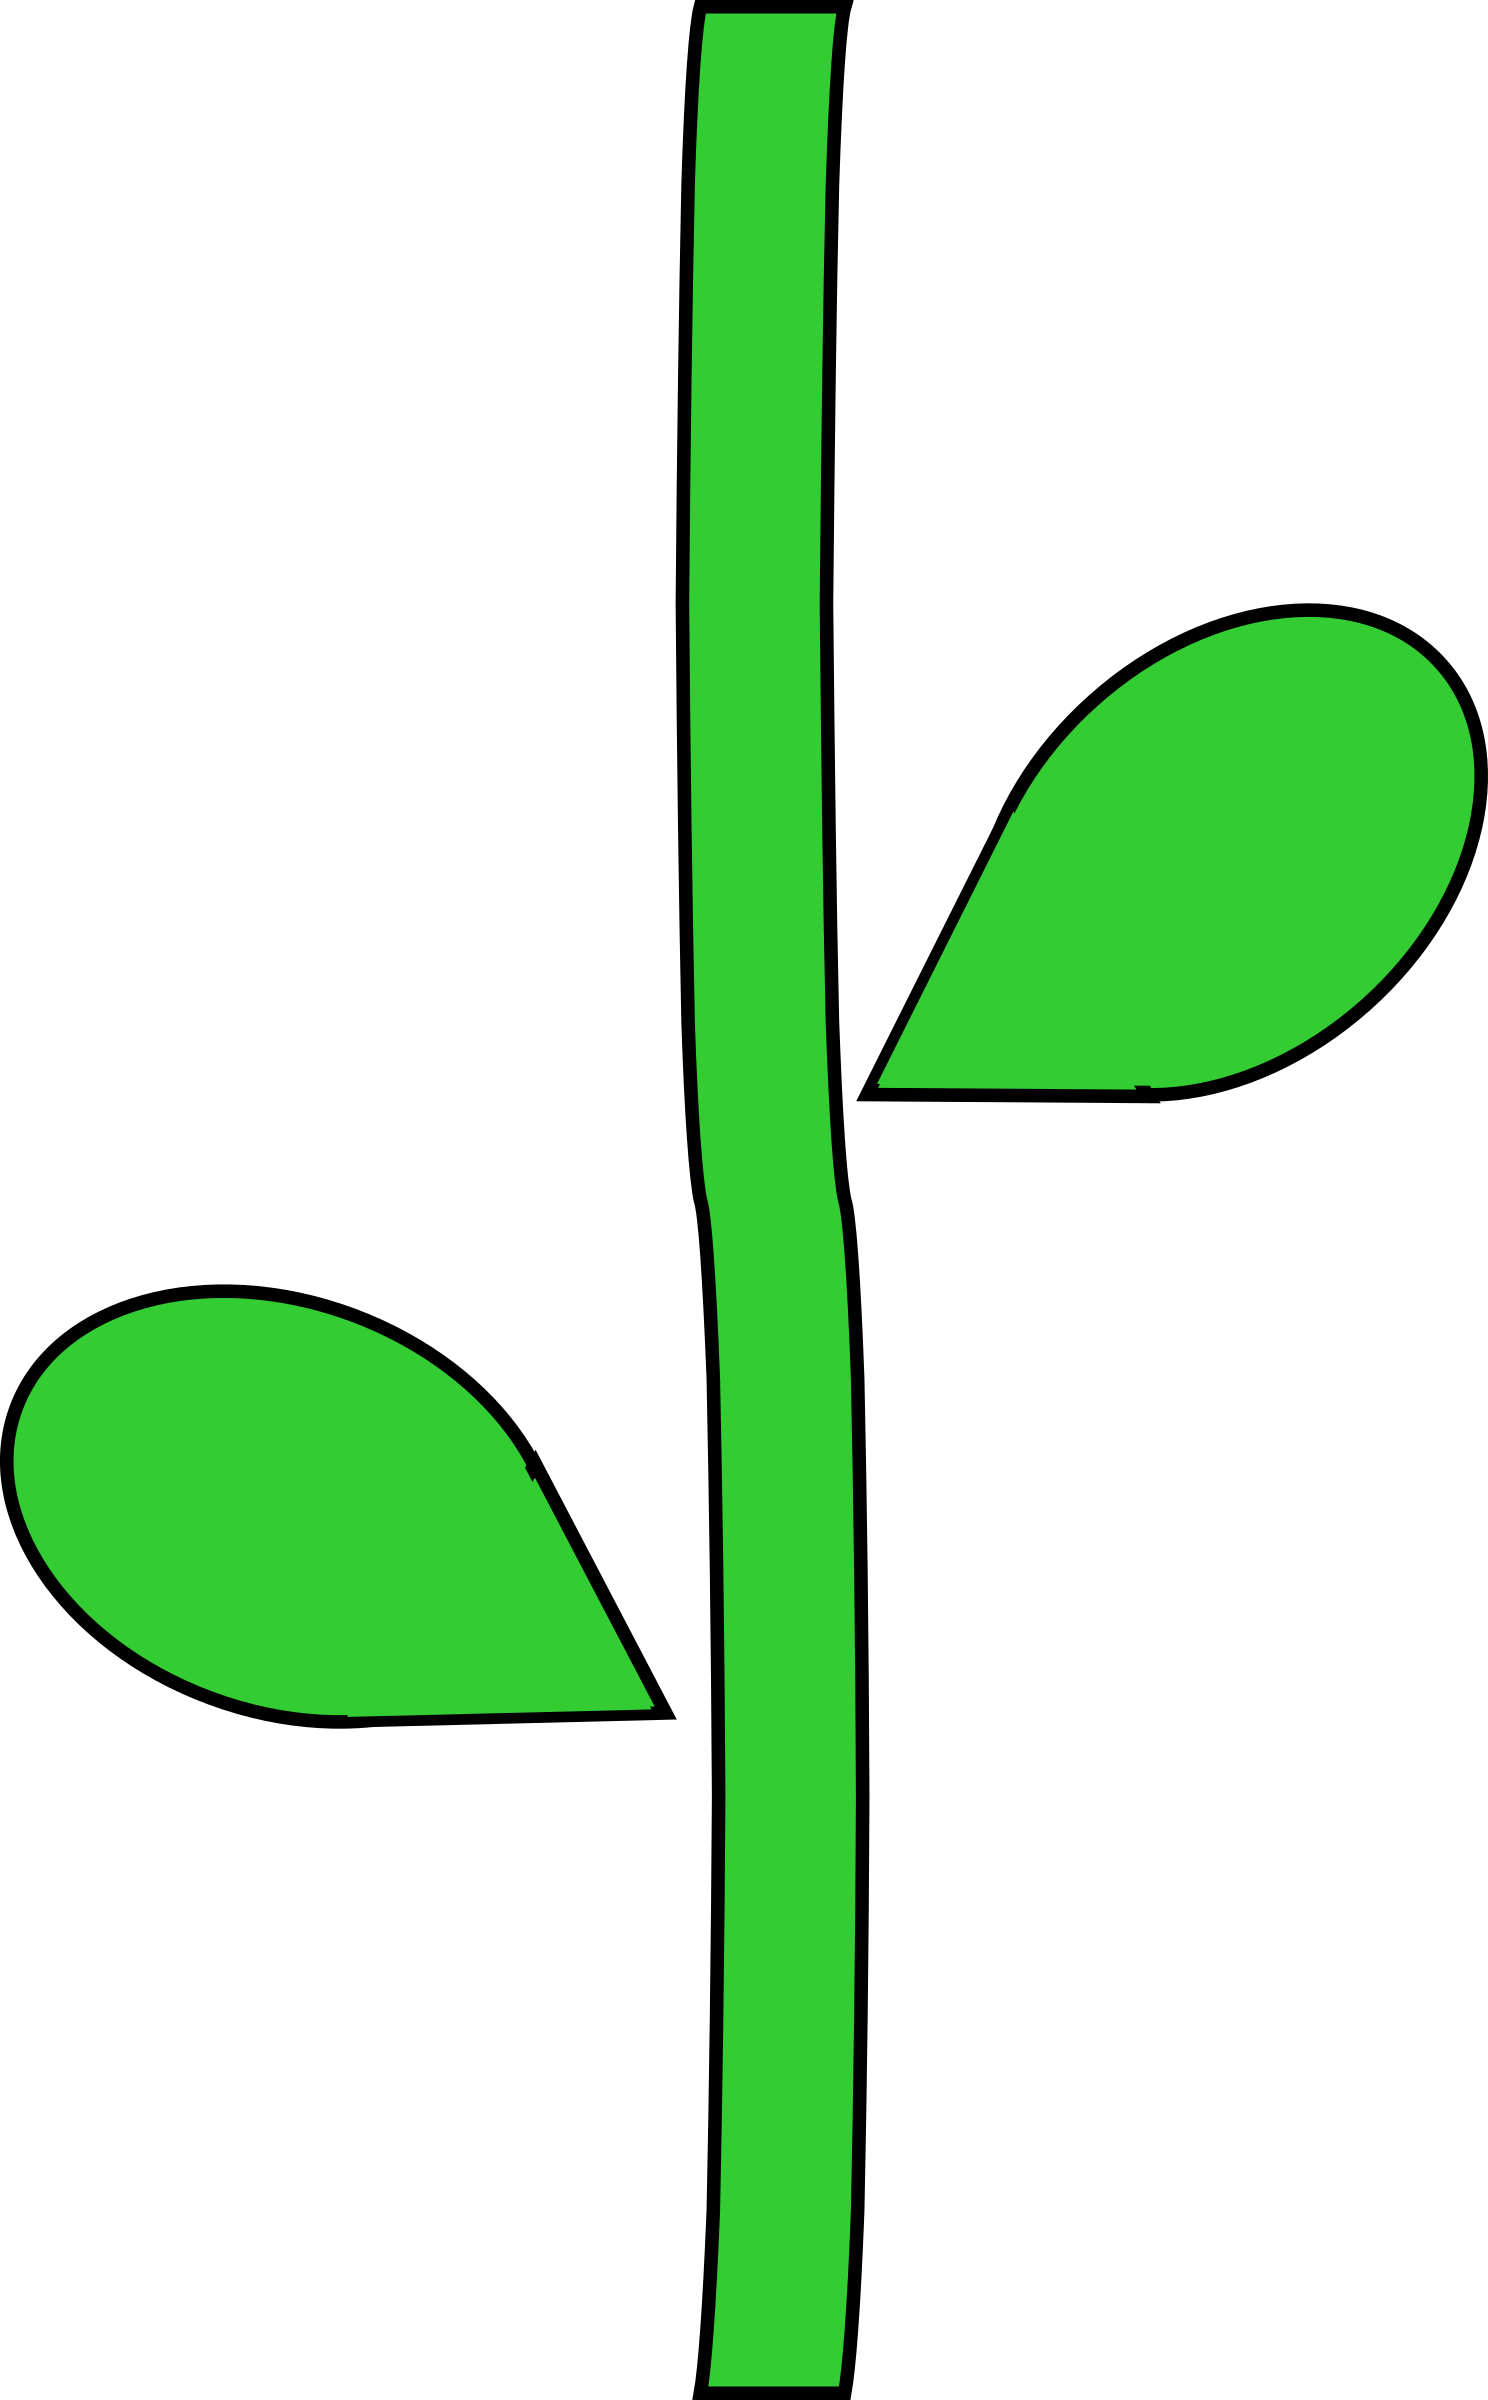 Flower Stem by @barnheartowl, A green flower stem, on @openclipart.